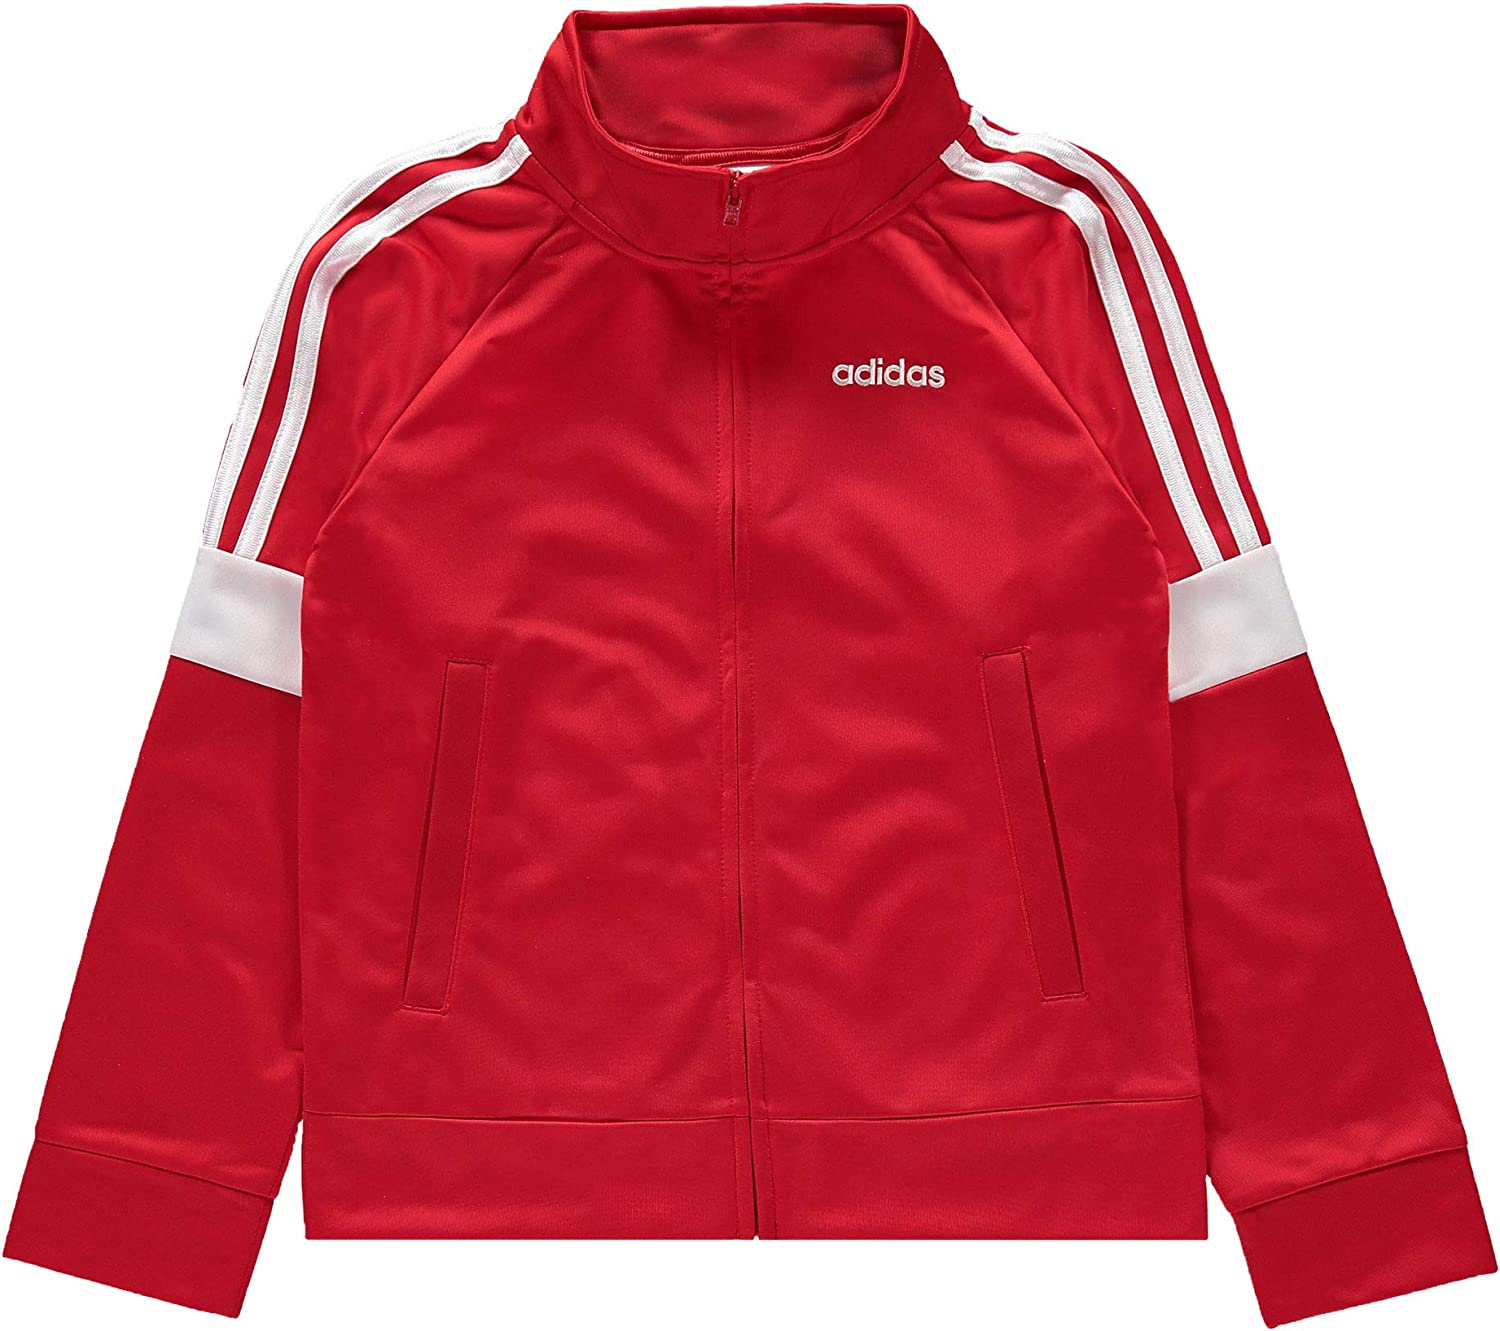 10//12 Red Event, M adidas Boys Iconic Tricot Jacket